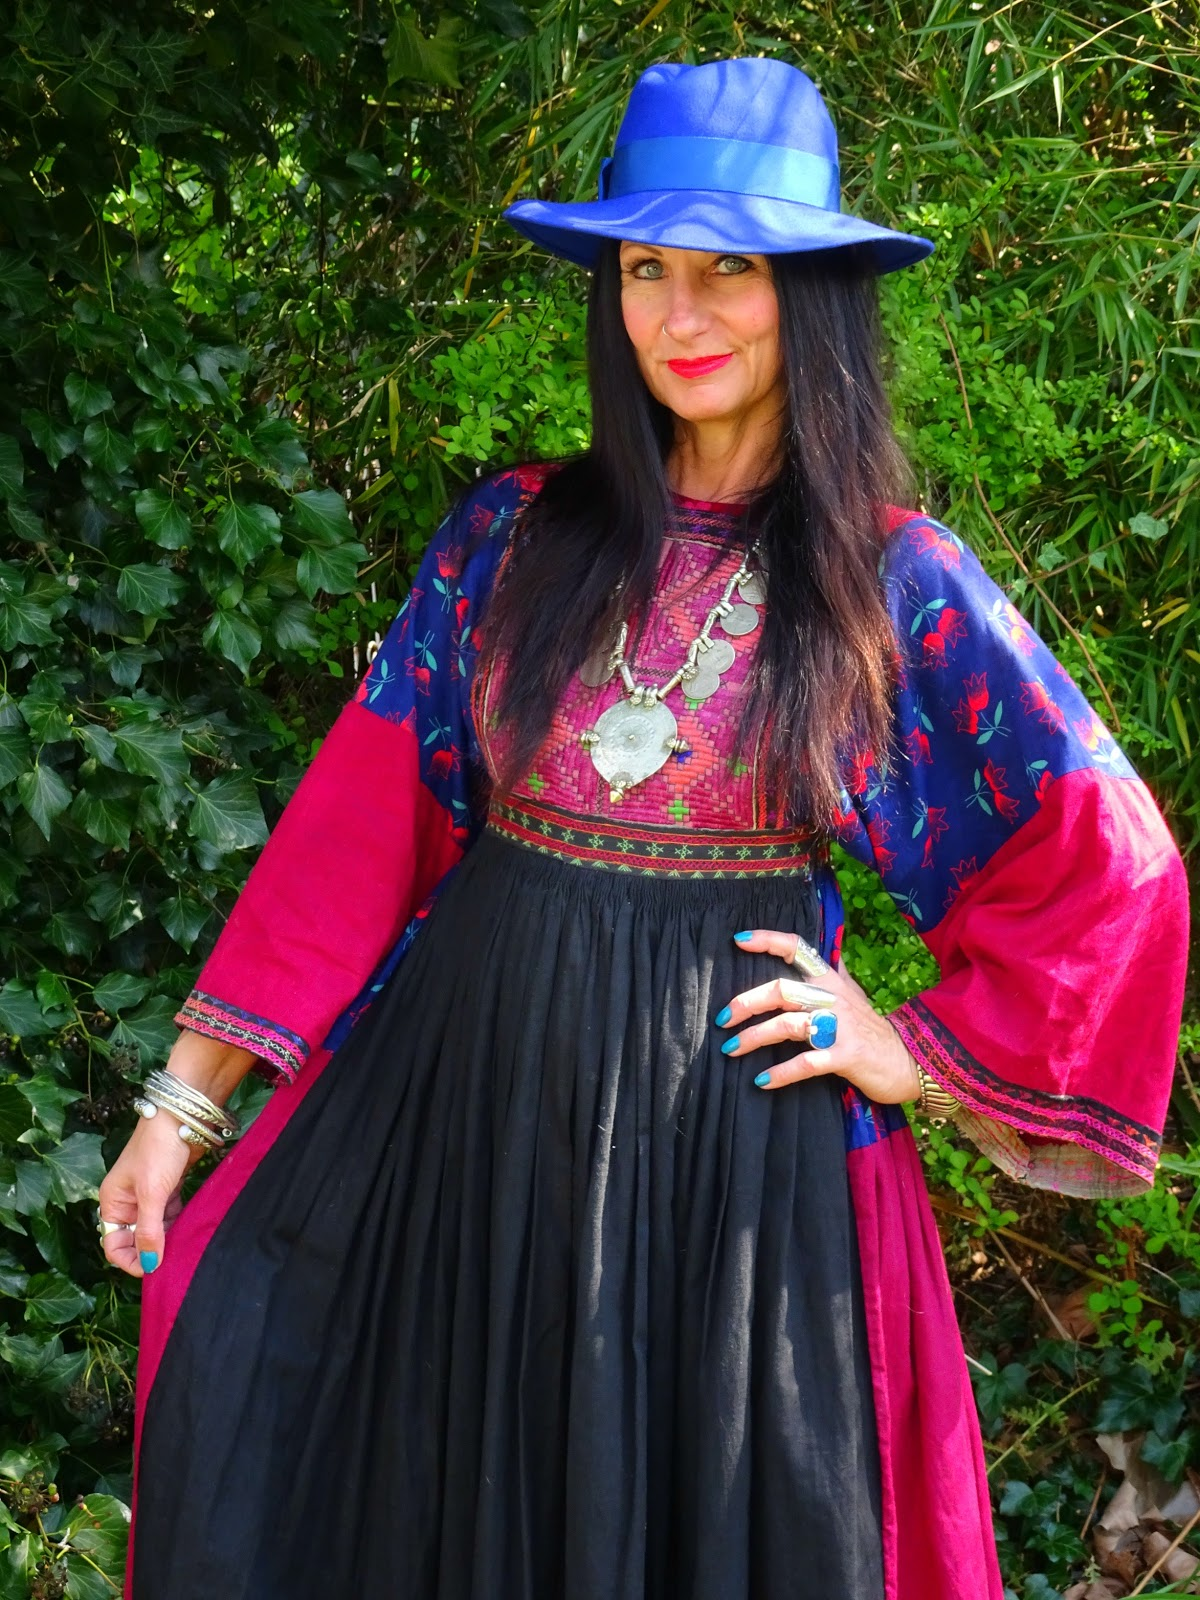 22325735a1 Just like last week when I found that velvet cloak which perfectly  complimented the embroidered Indian maxi dress I was already wearing, today  I've found ...